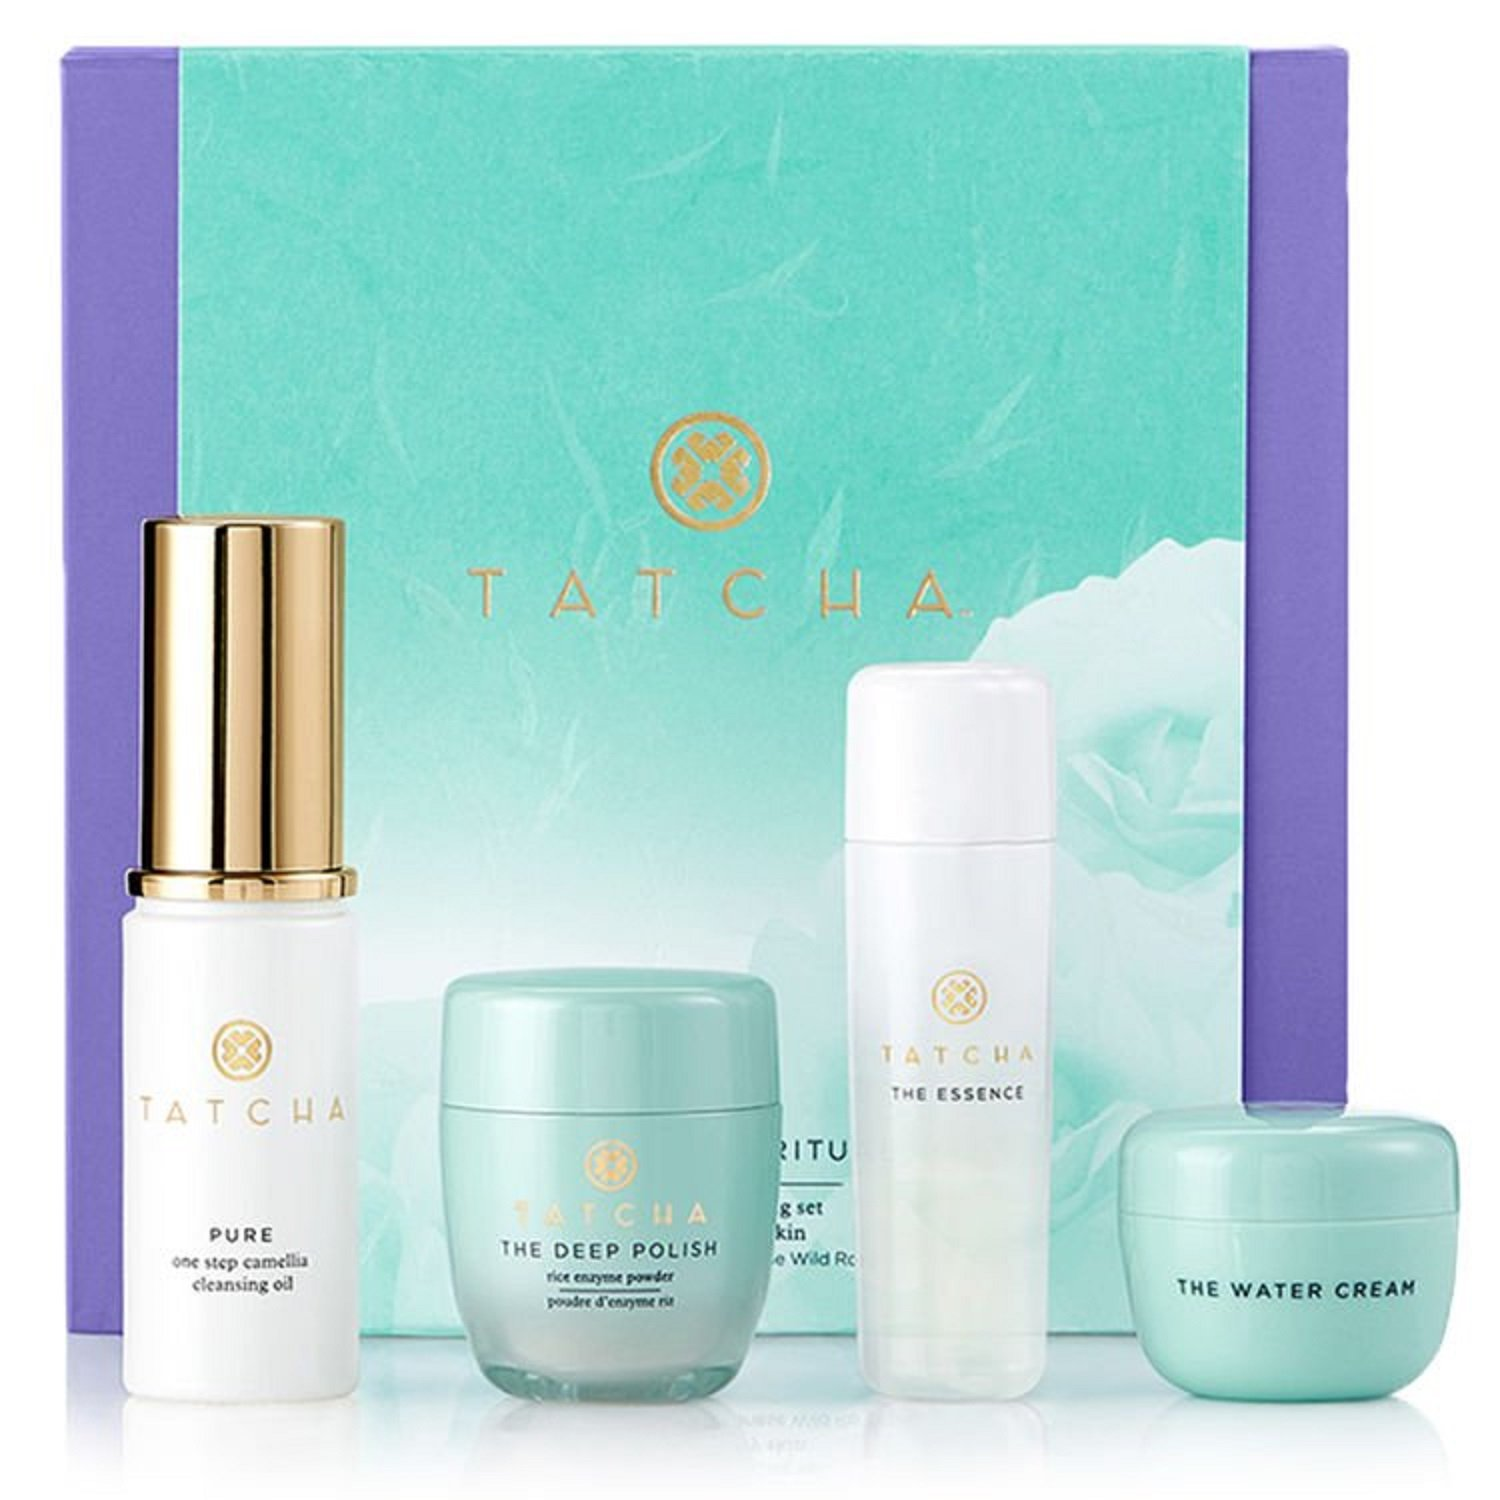 Tatcha The Starter Ritual Set - Balancing for Normal to Oily Skin by Tatcha (Image #1)